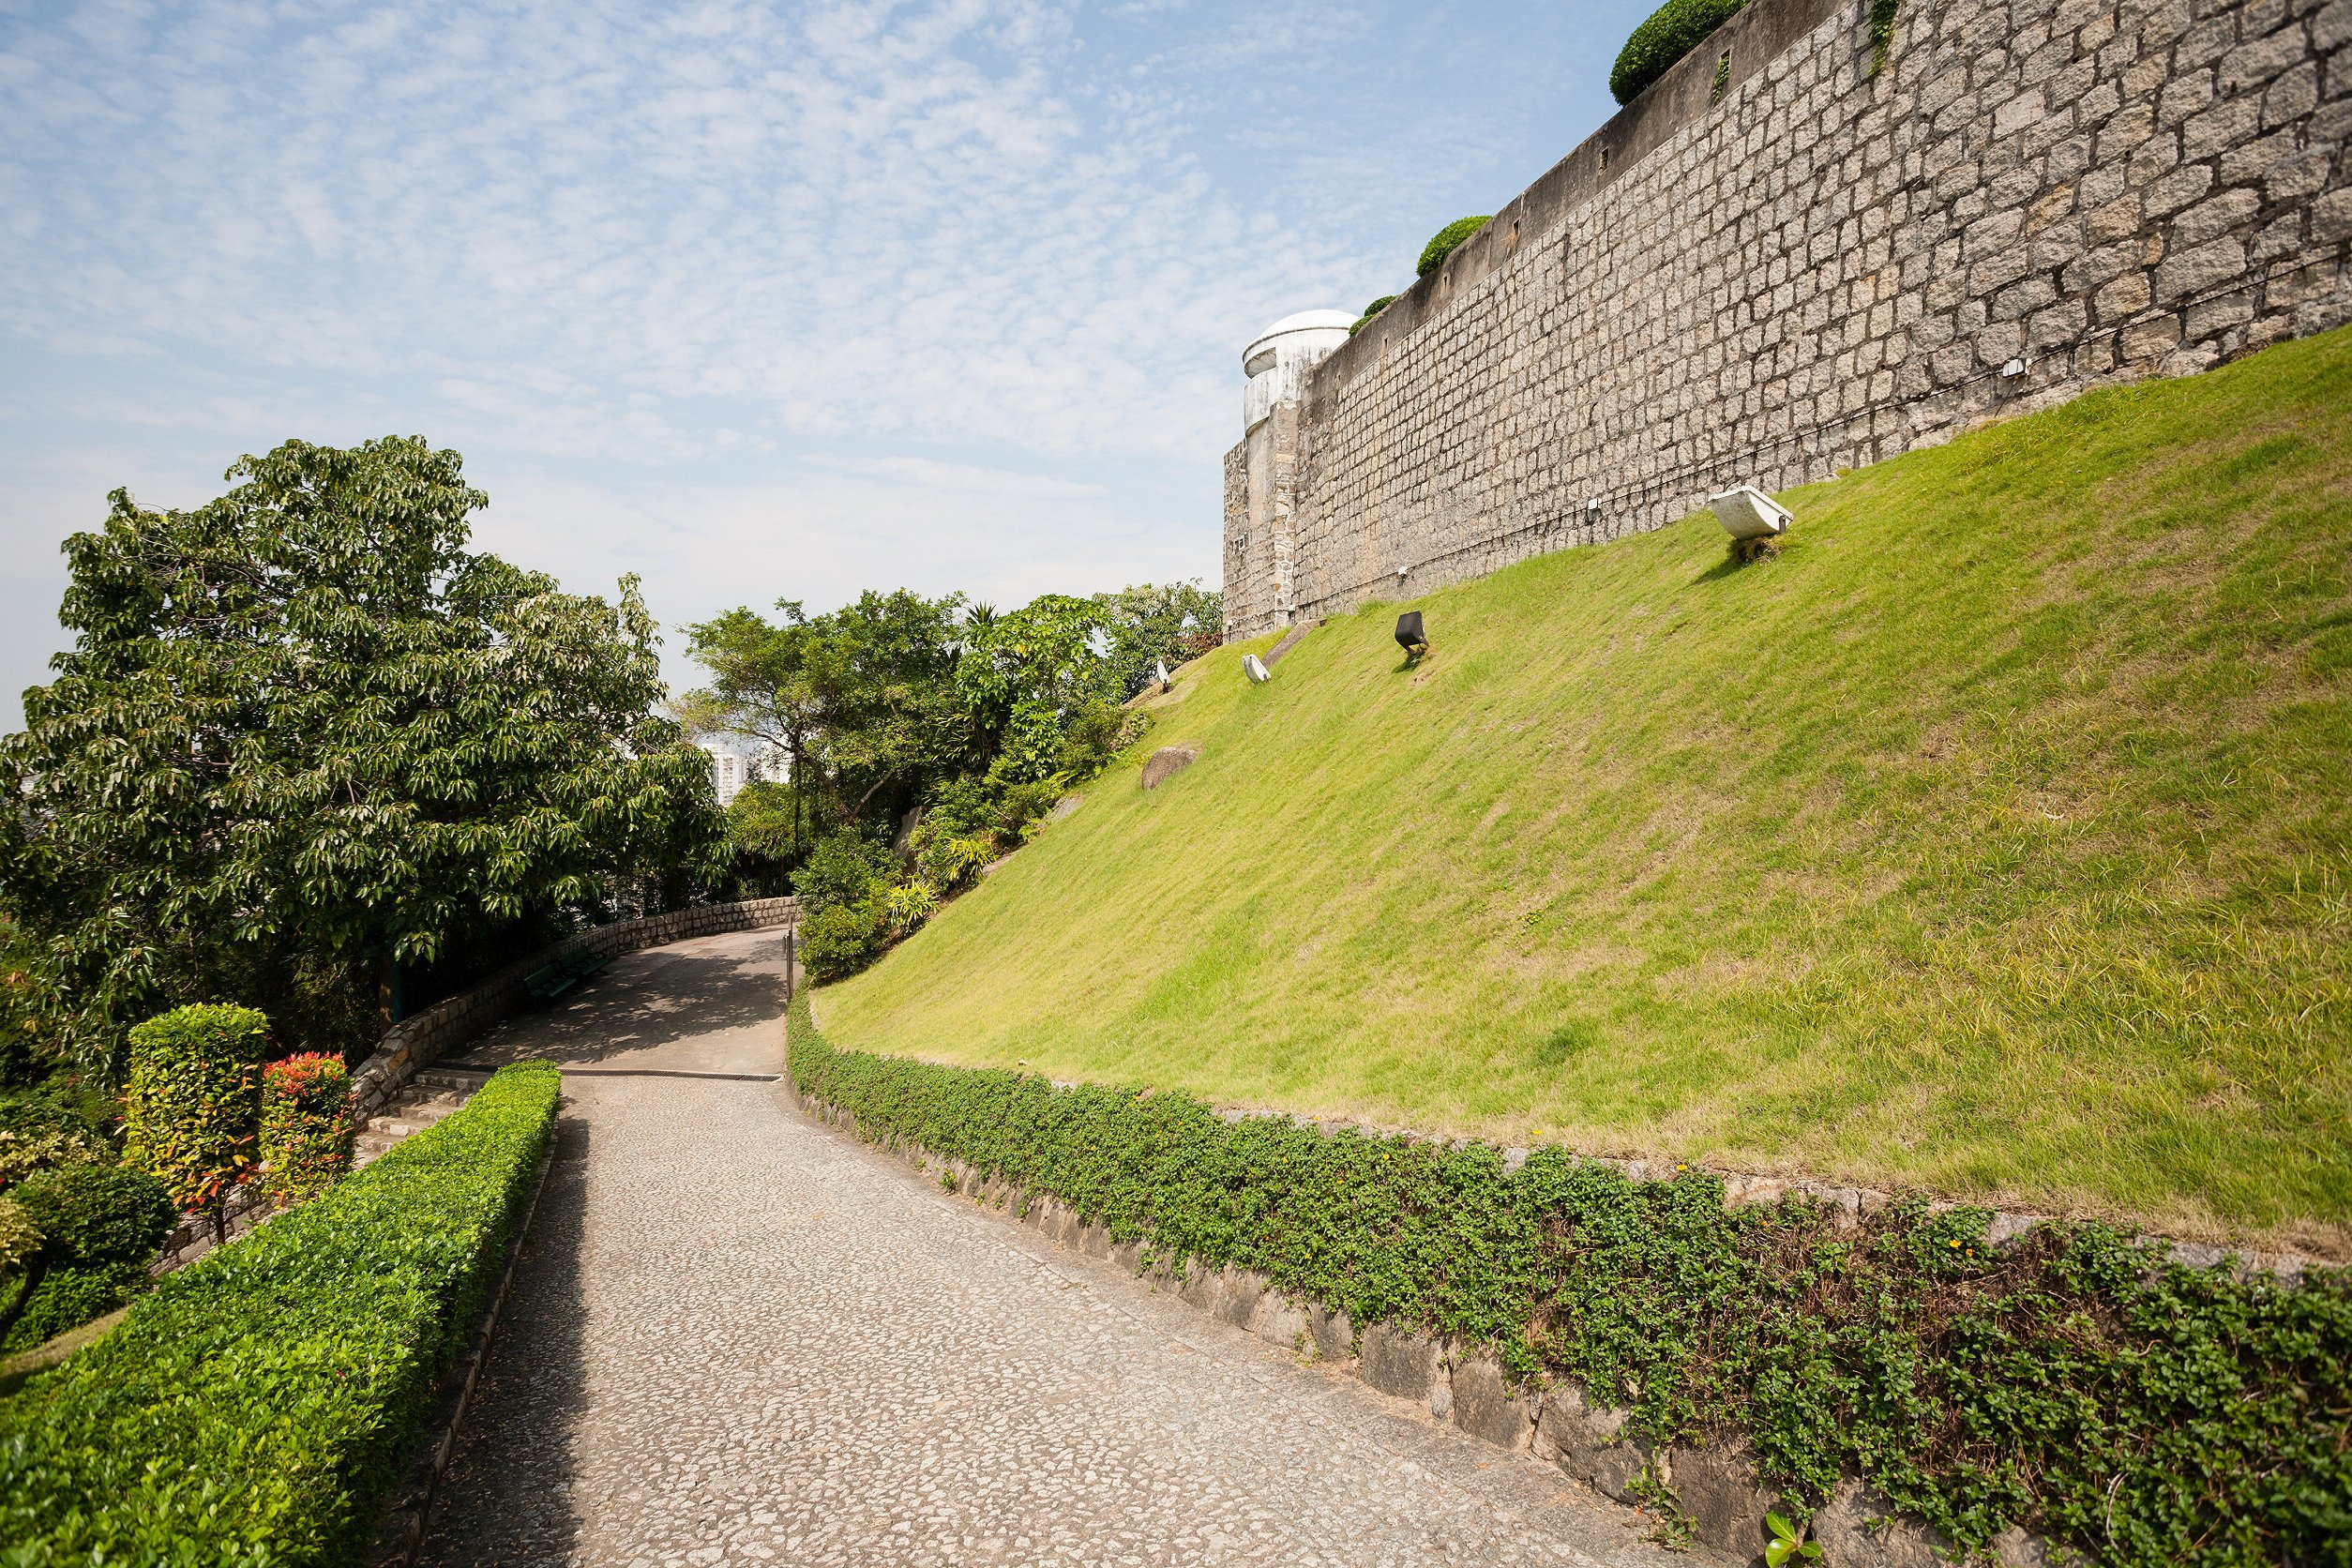 Old Macau City Walls Sections